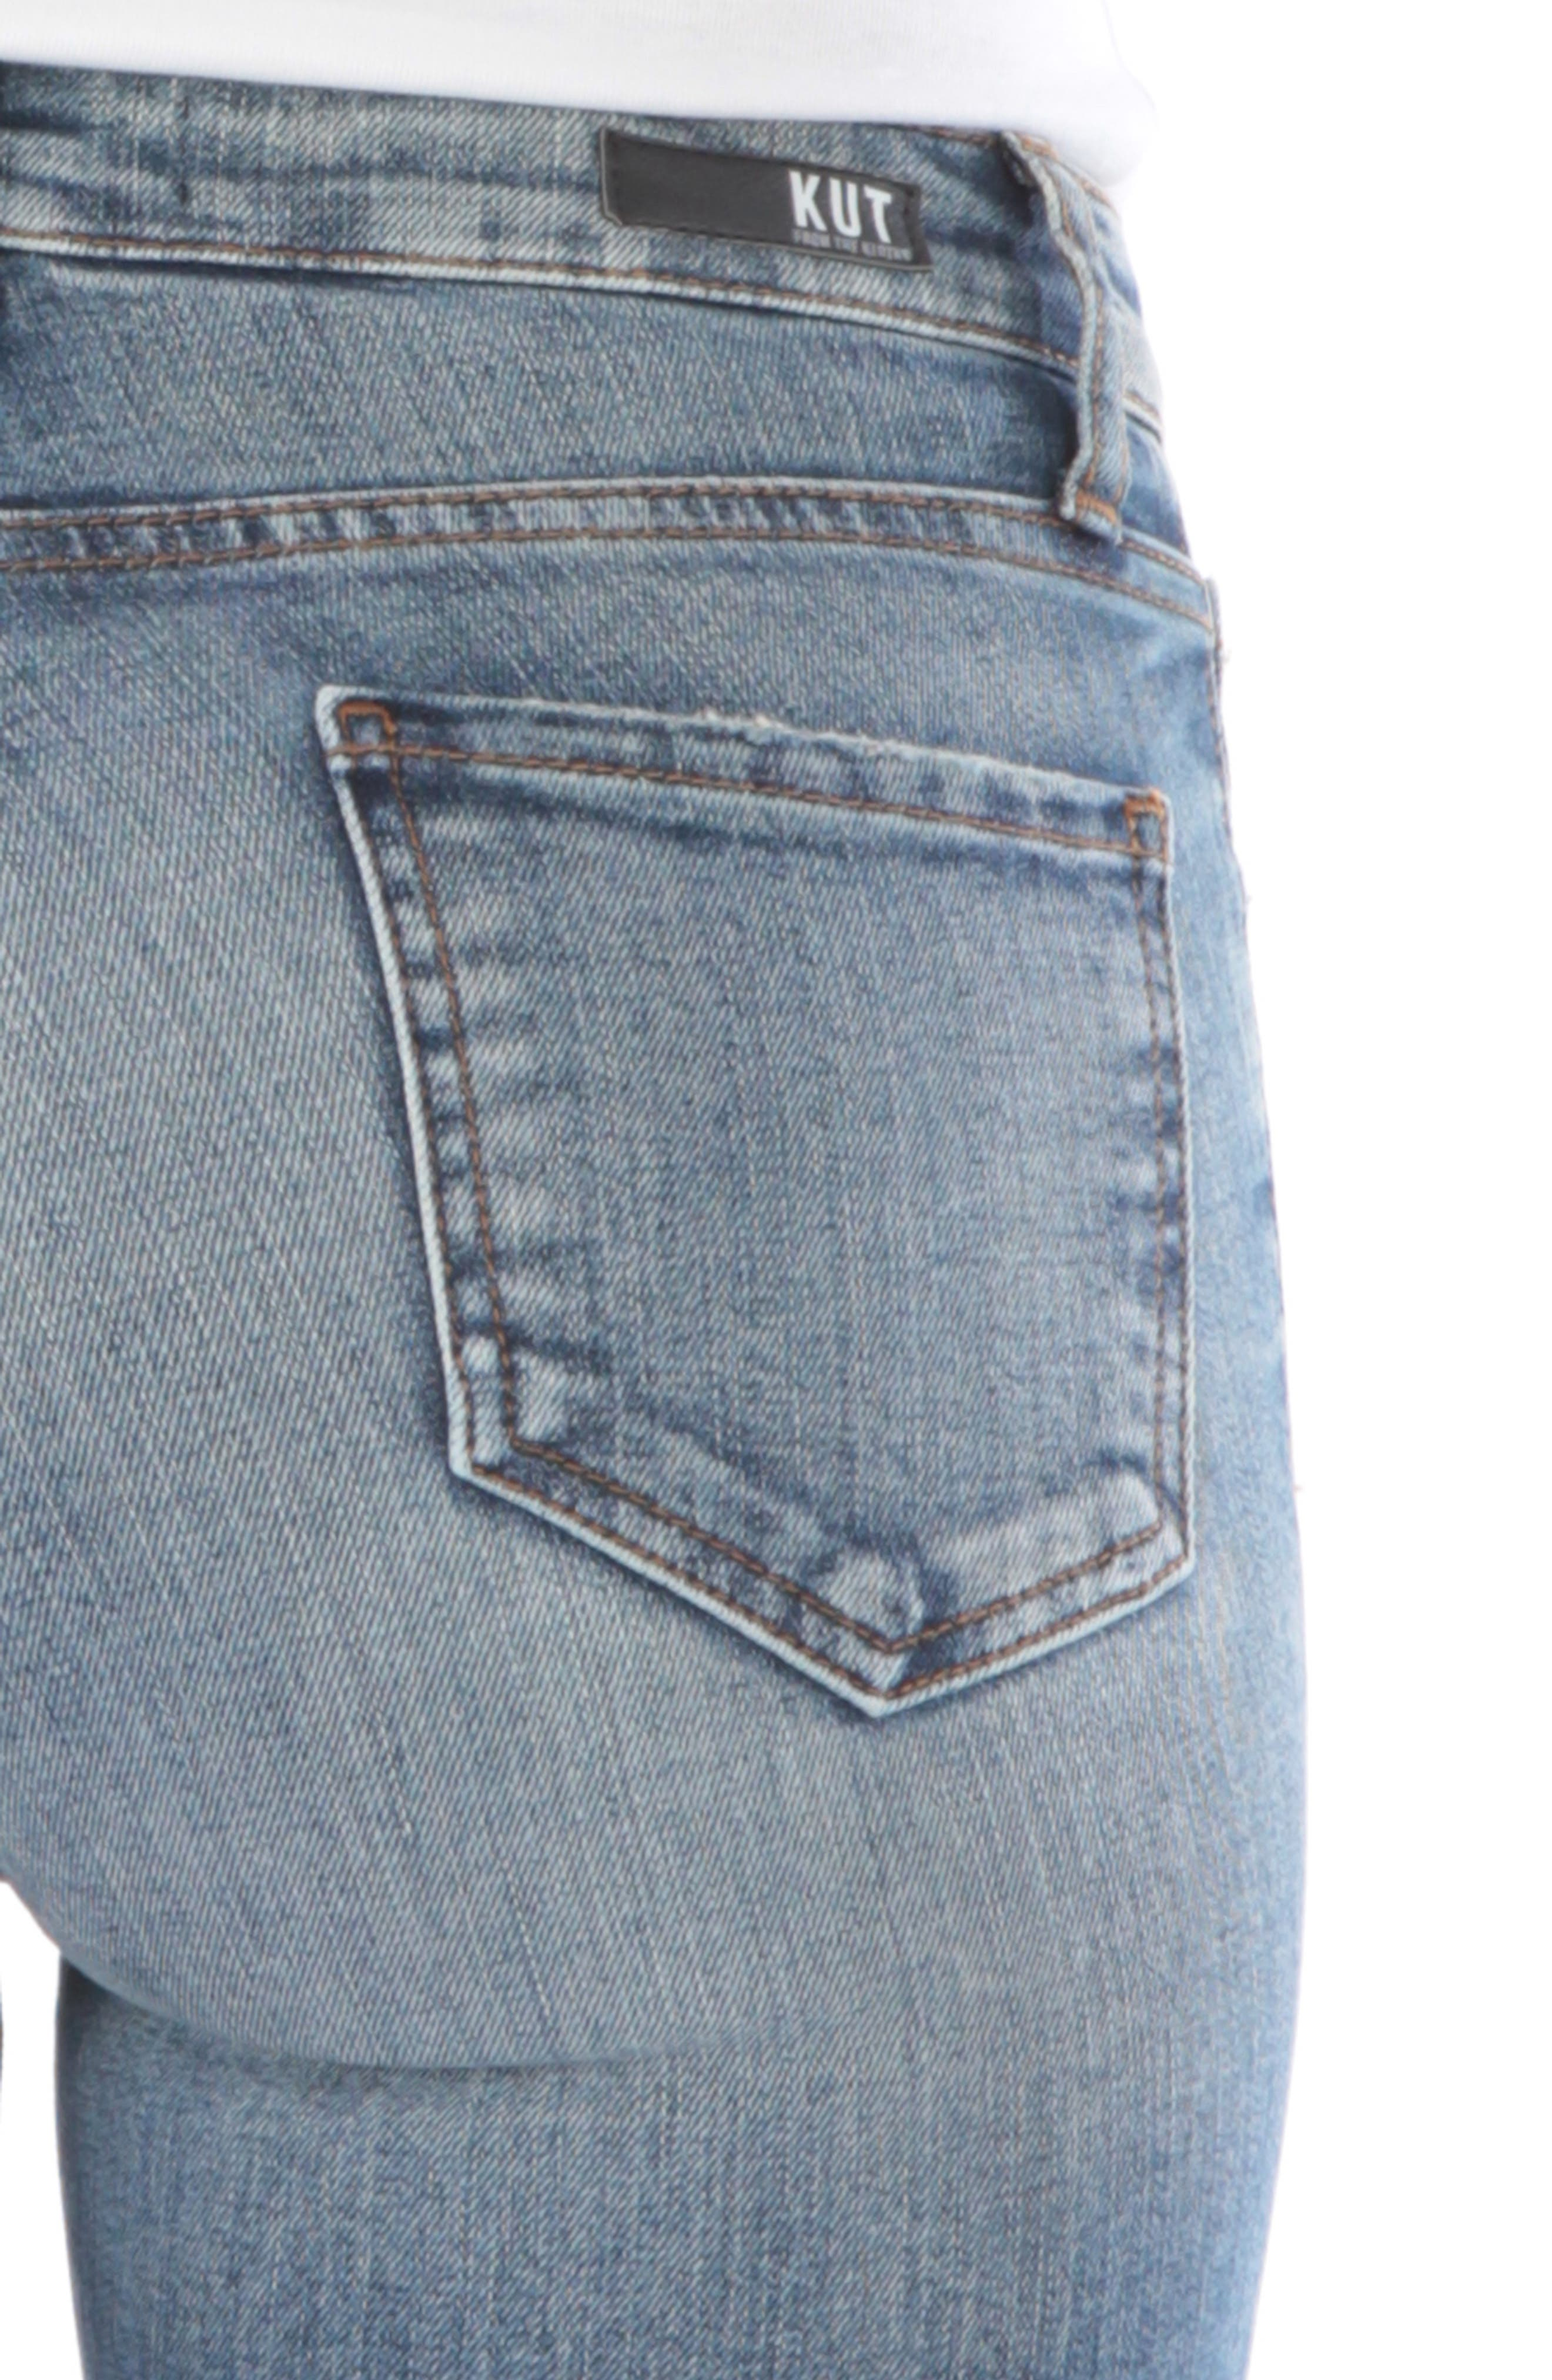 Reese Ripped Ankle Straight Leg Jeans,                             Alternate thumbnail 4, color,                             402